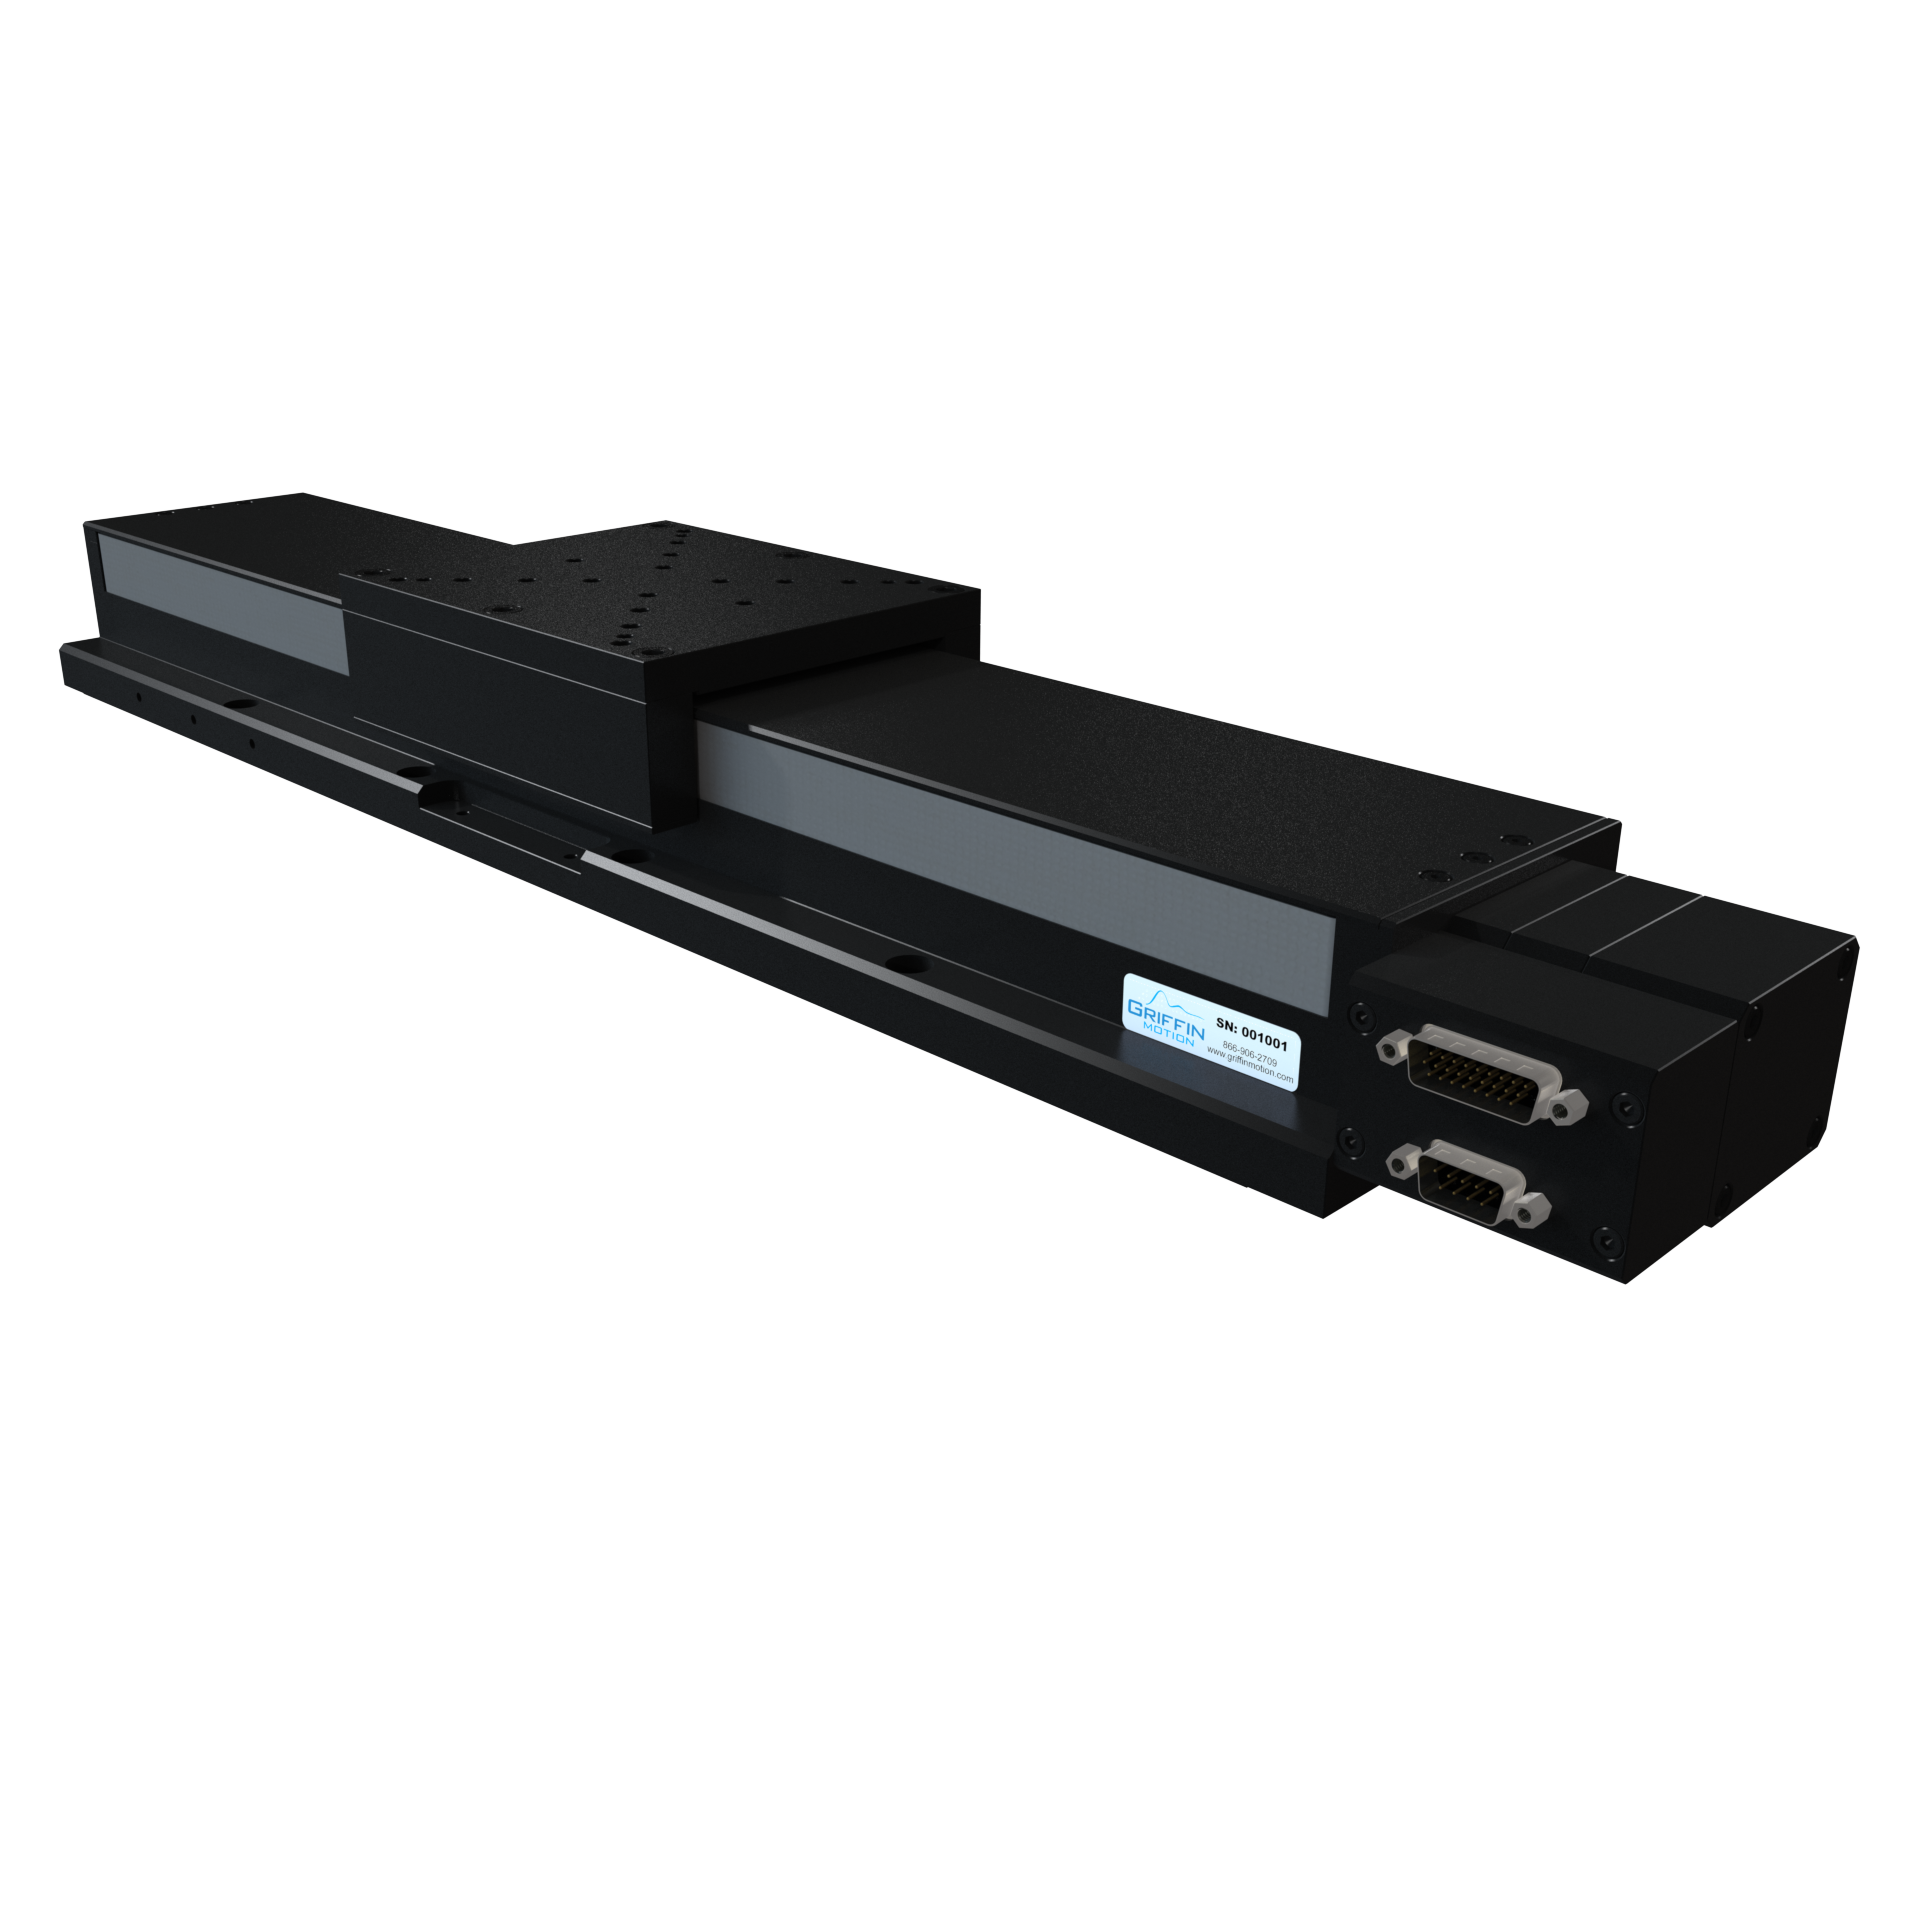 Precision Linear Stage with Brushless Servo Ball Screw Drive, Recirculating Linear Guide Ways, Rotary Encoder, and Side Seals